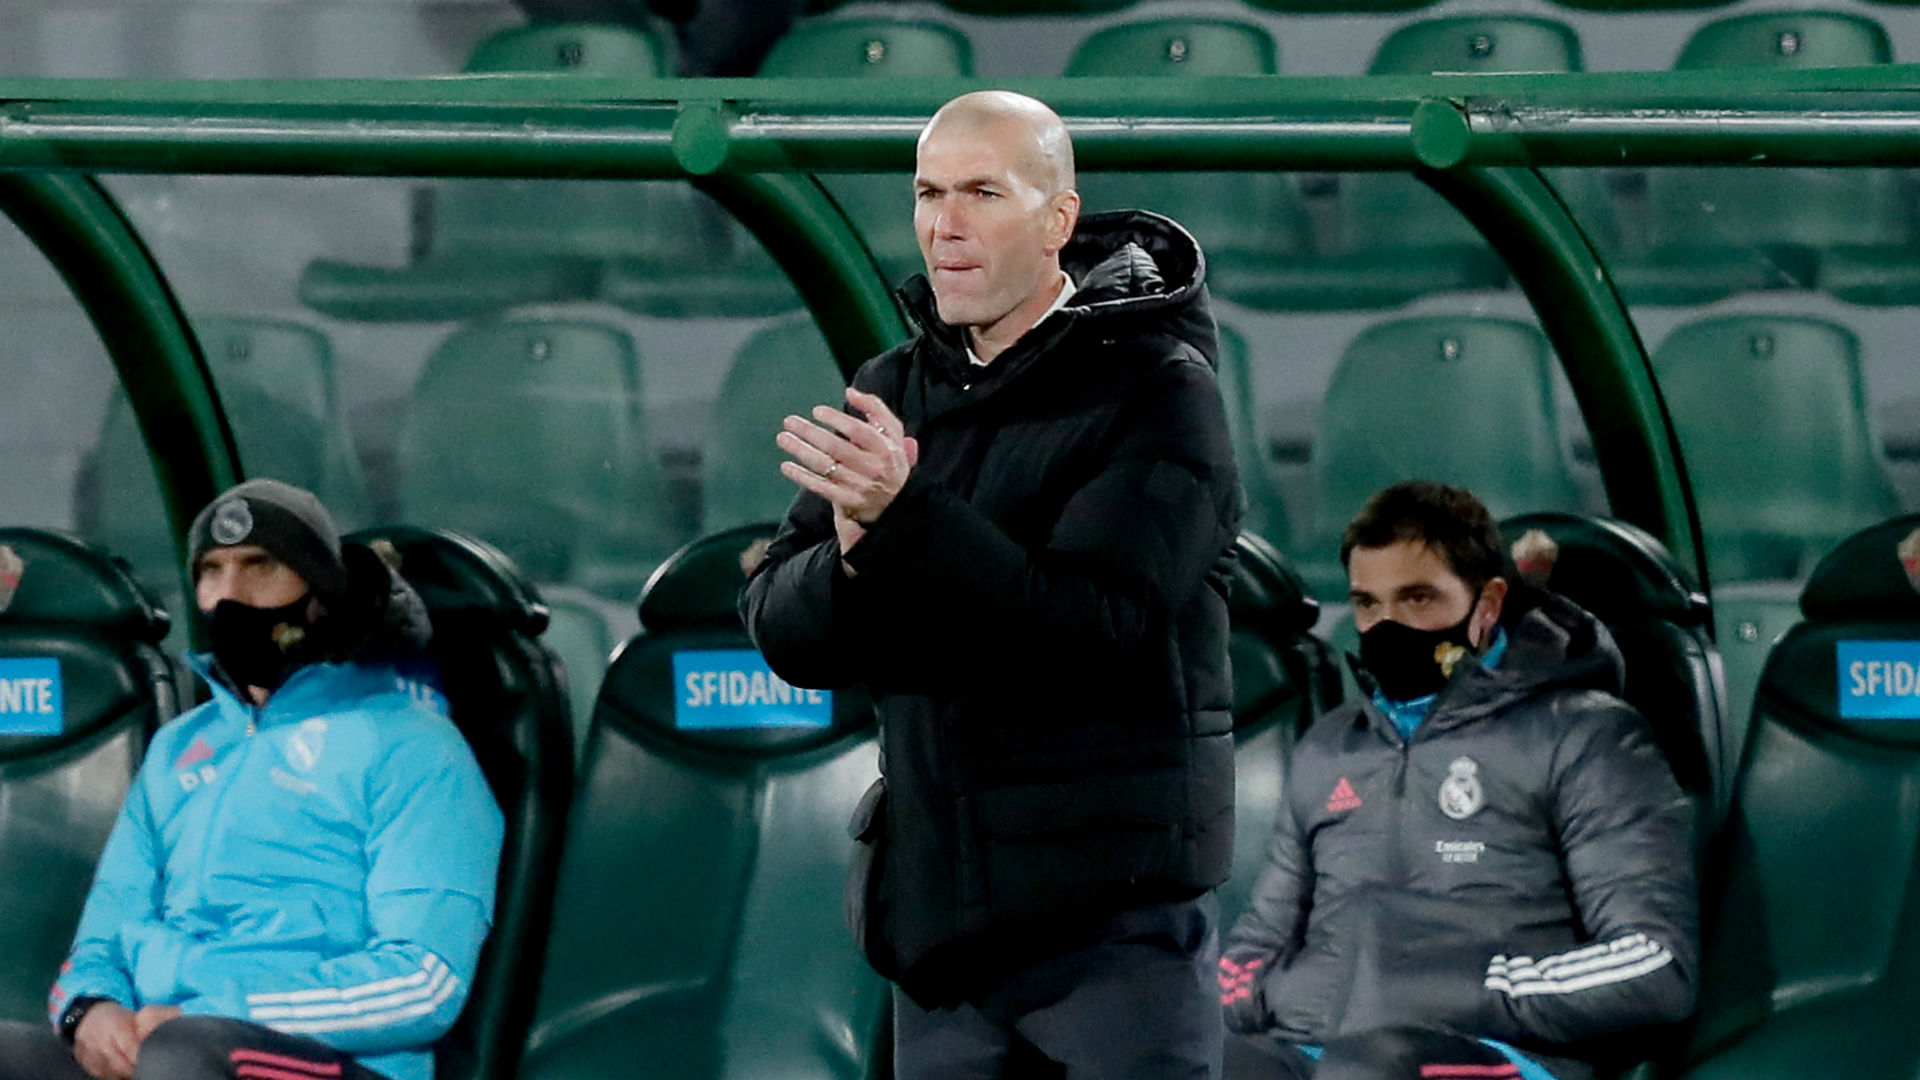 All teams are going to lose points – Madrid boss Zidane rues missed opportunities after Elche draw